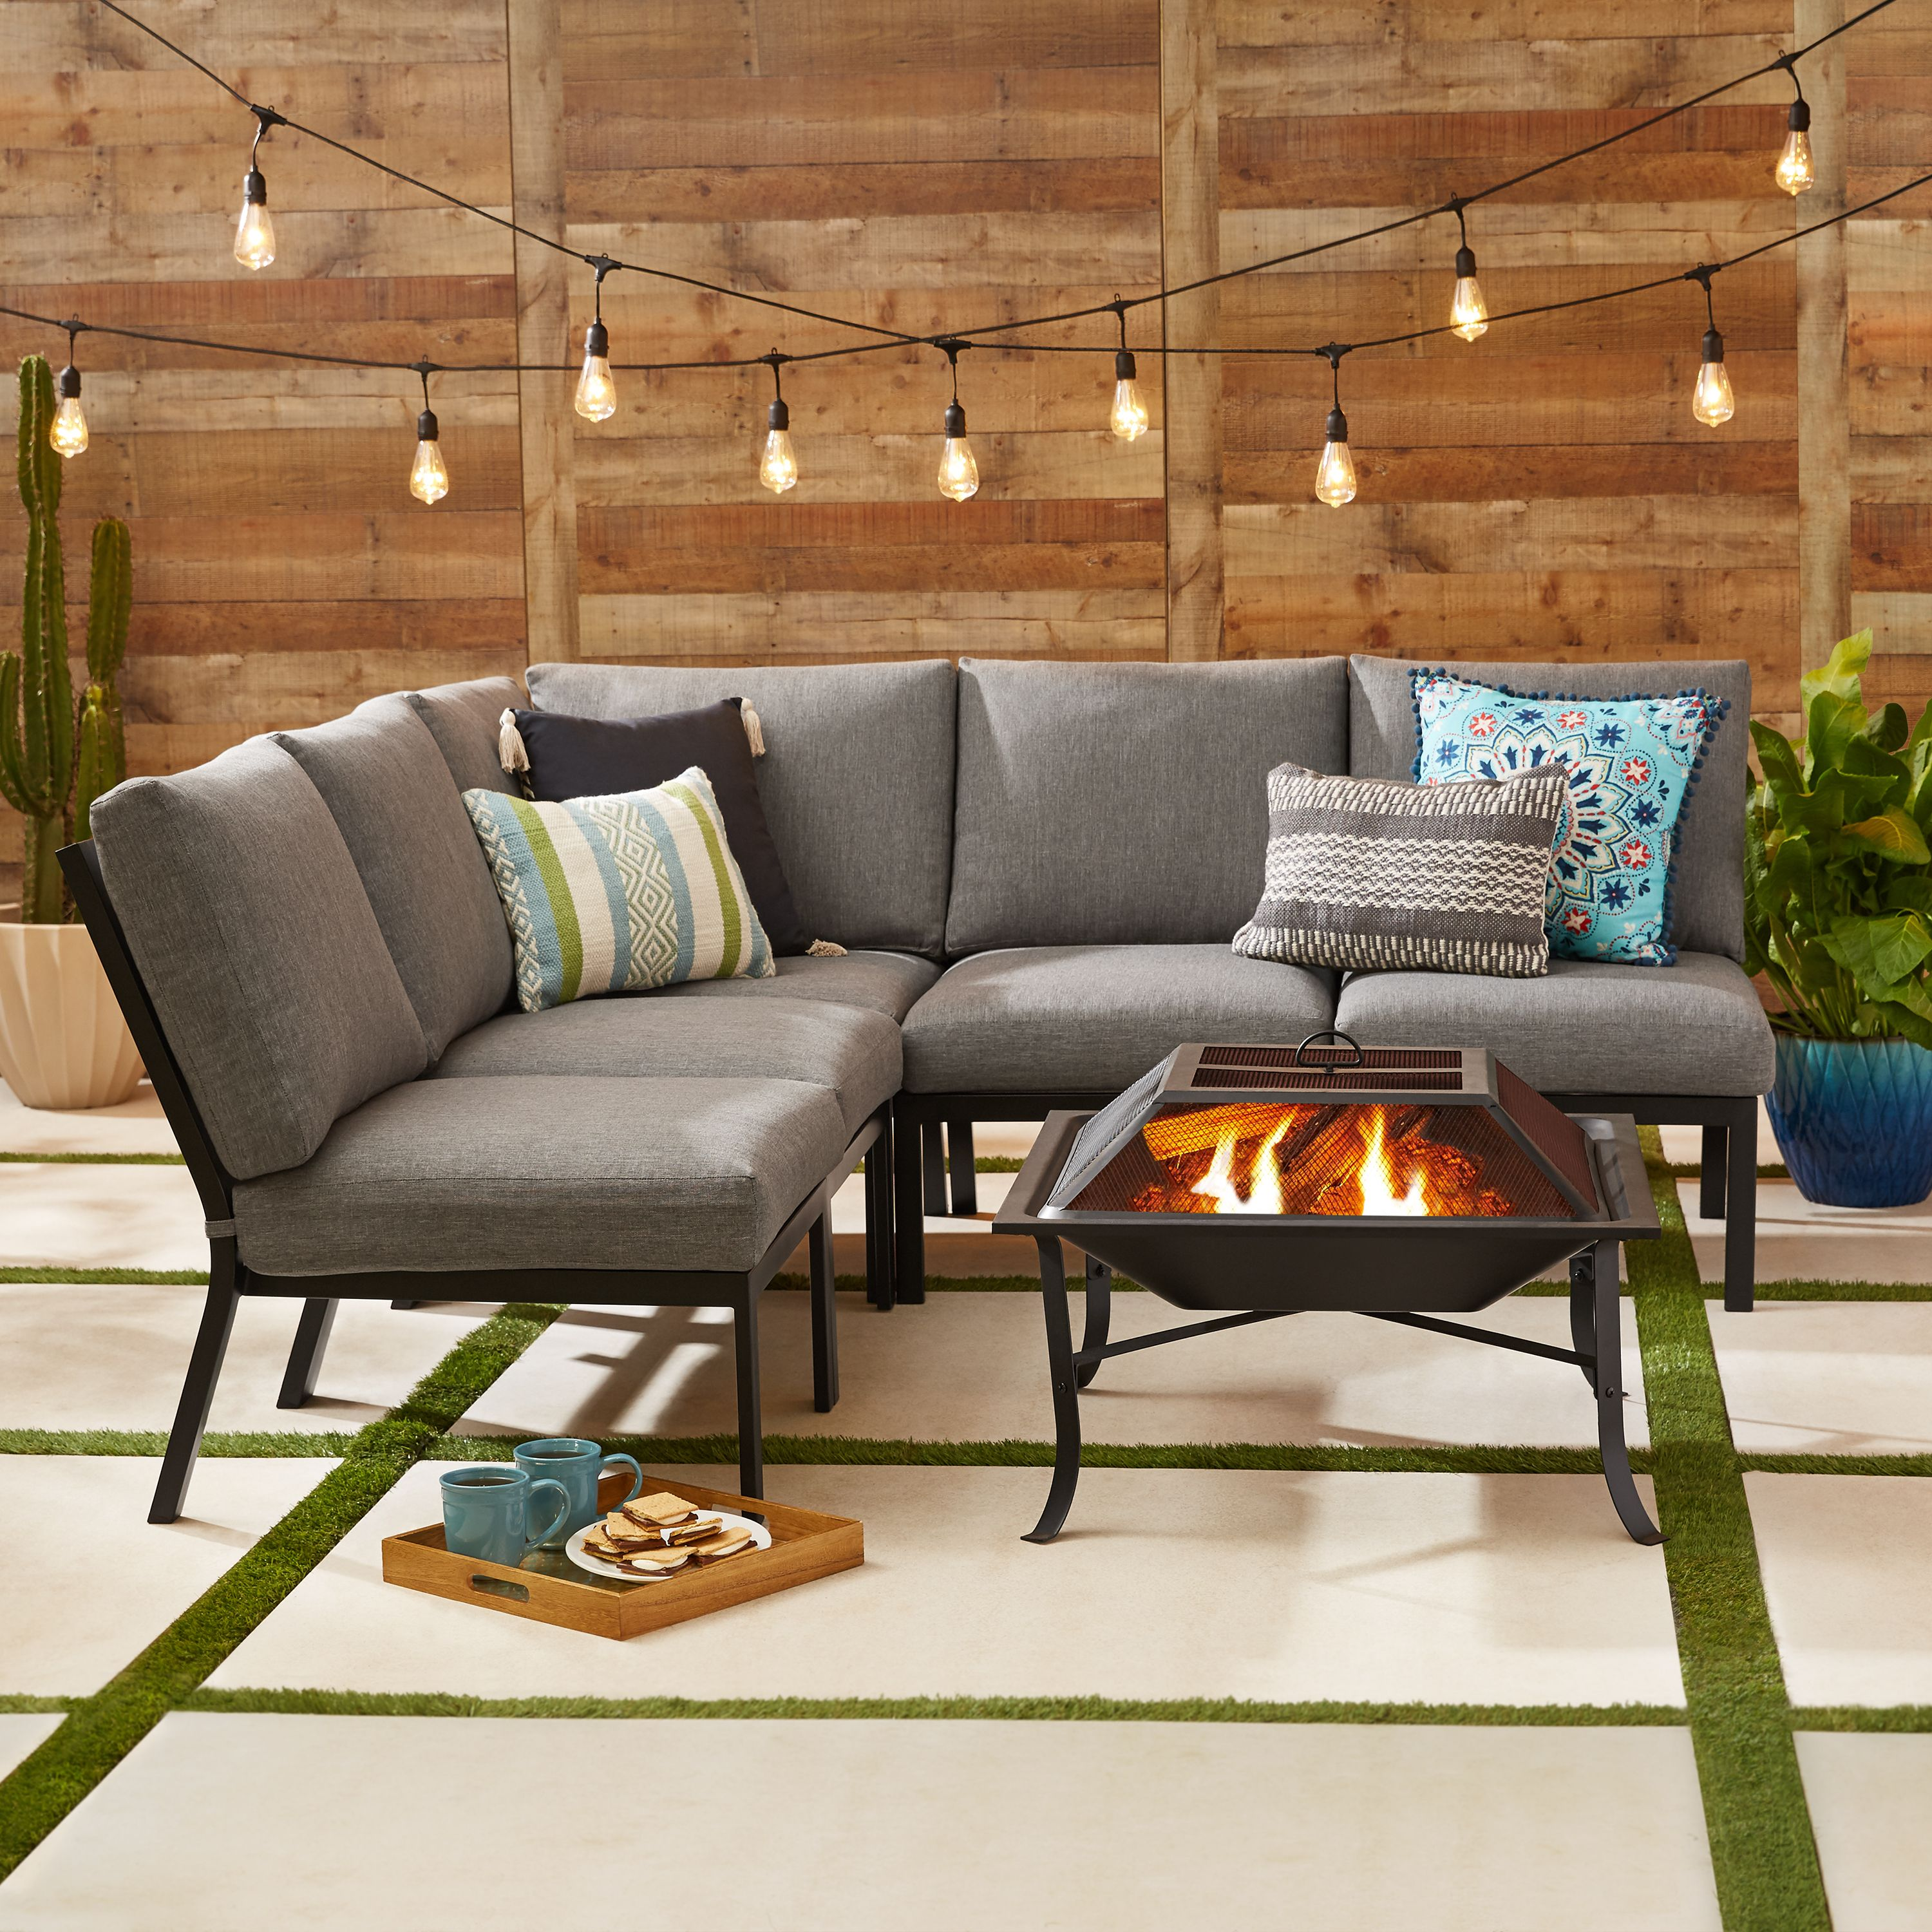 Mainstays Greyson Square 5pc Sectional